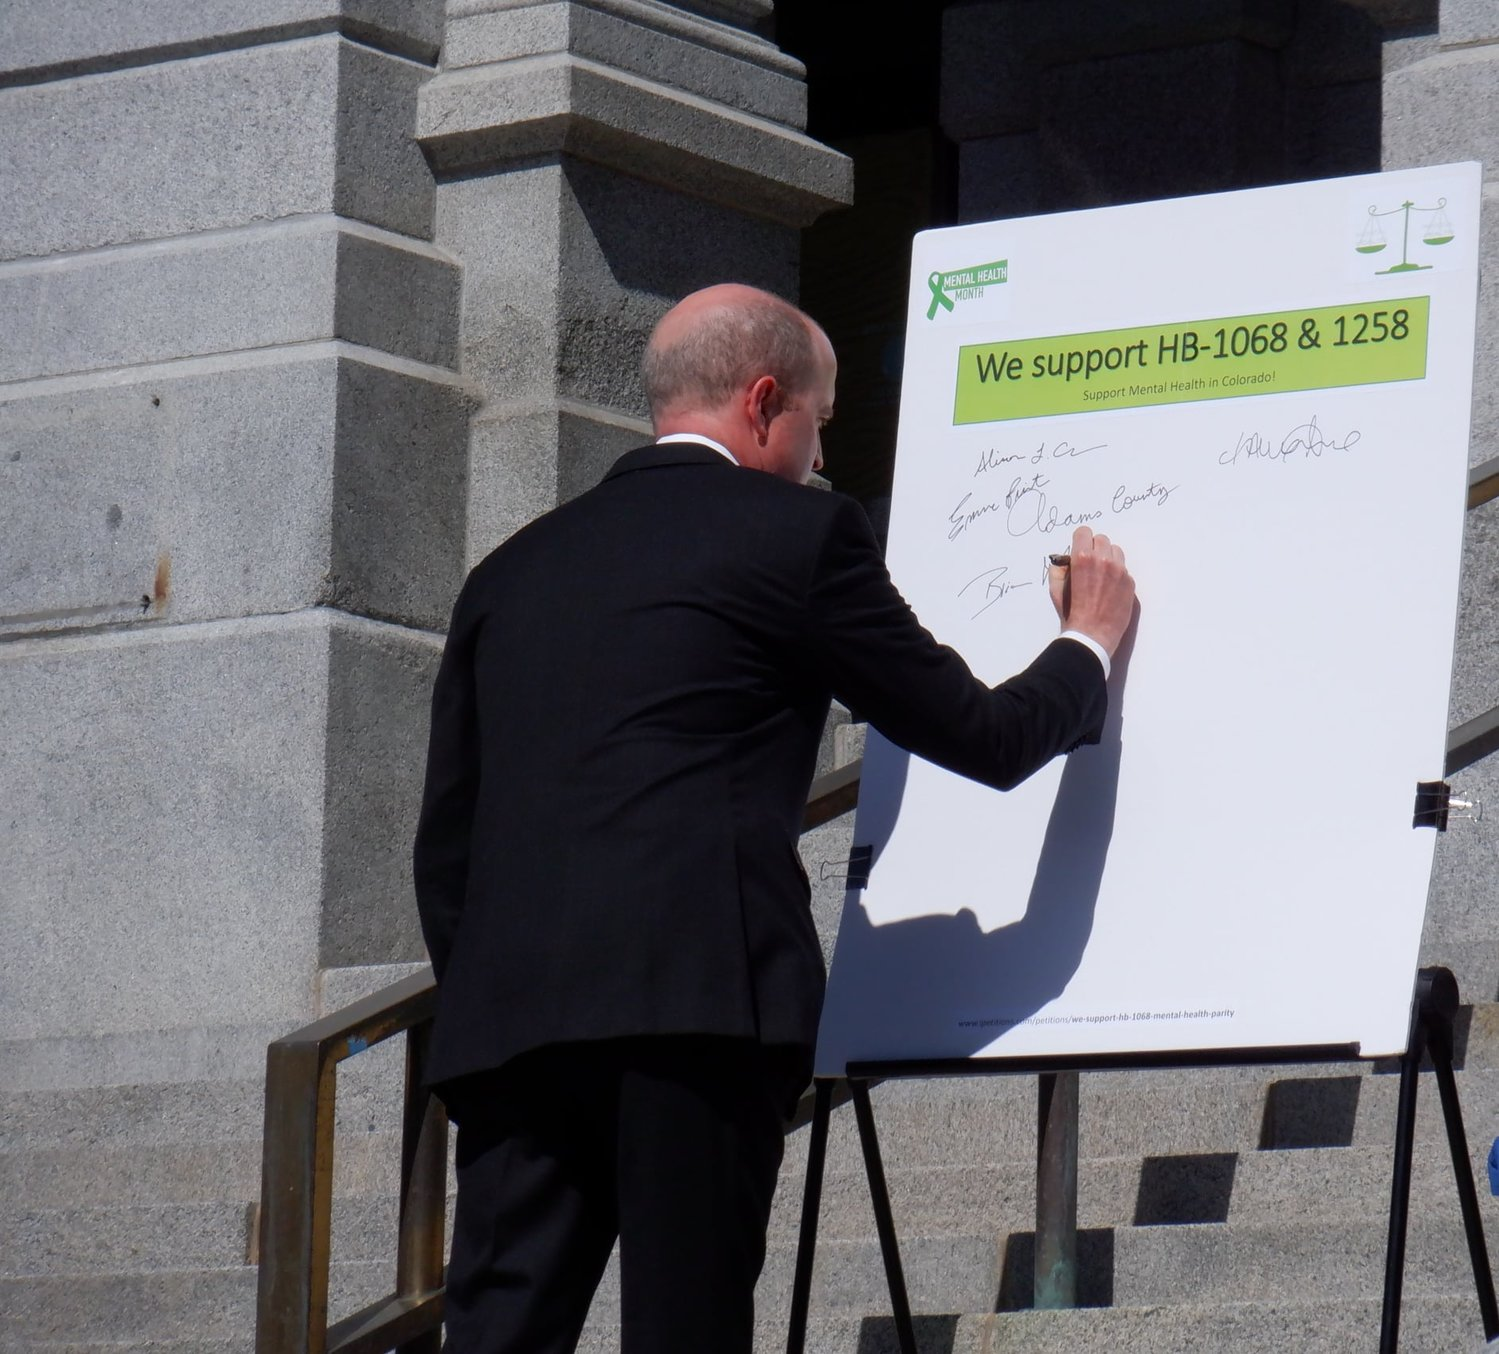 17th Judicial District Attorney Brian Mason signs his name to show support for bills in the state legislature that aim to provide Coloradans with more mental health resources at a May 12 press conference.